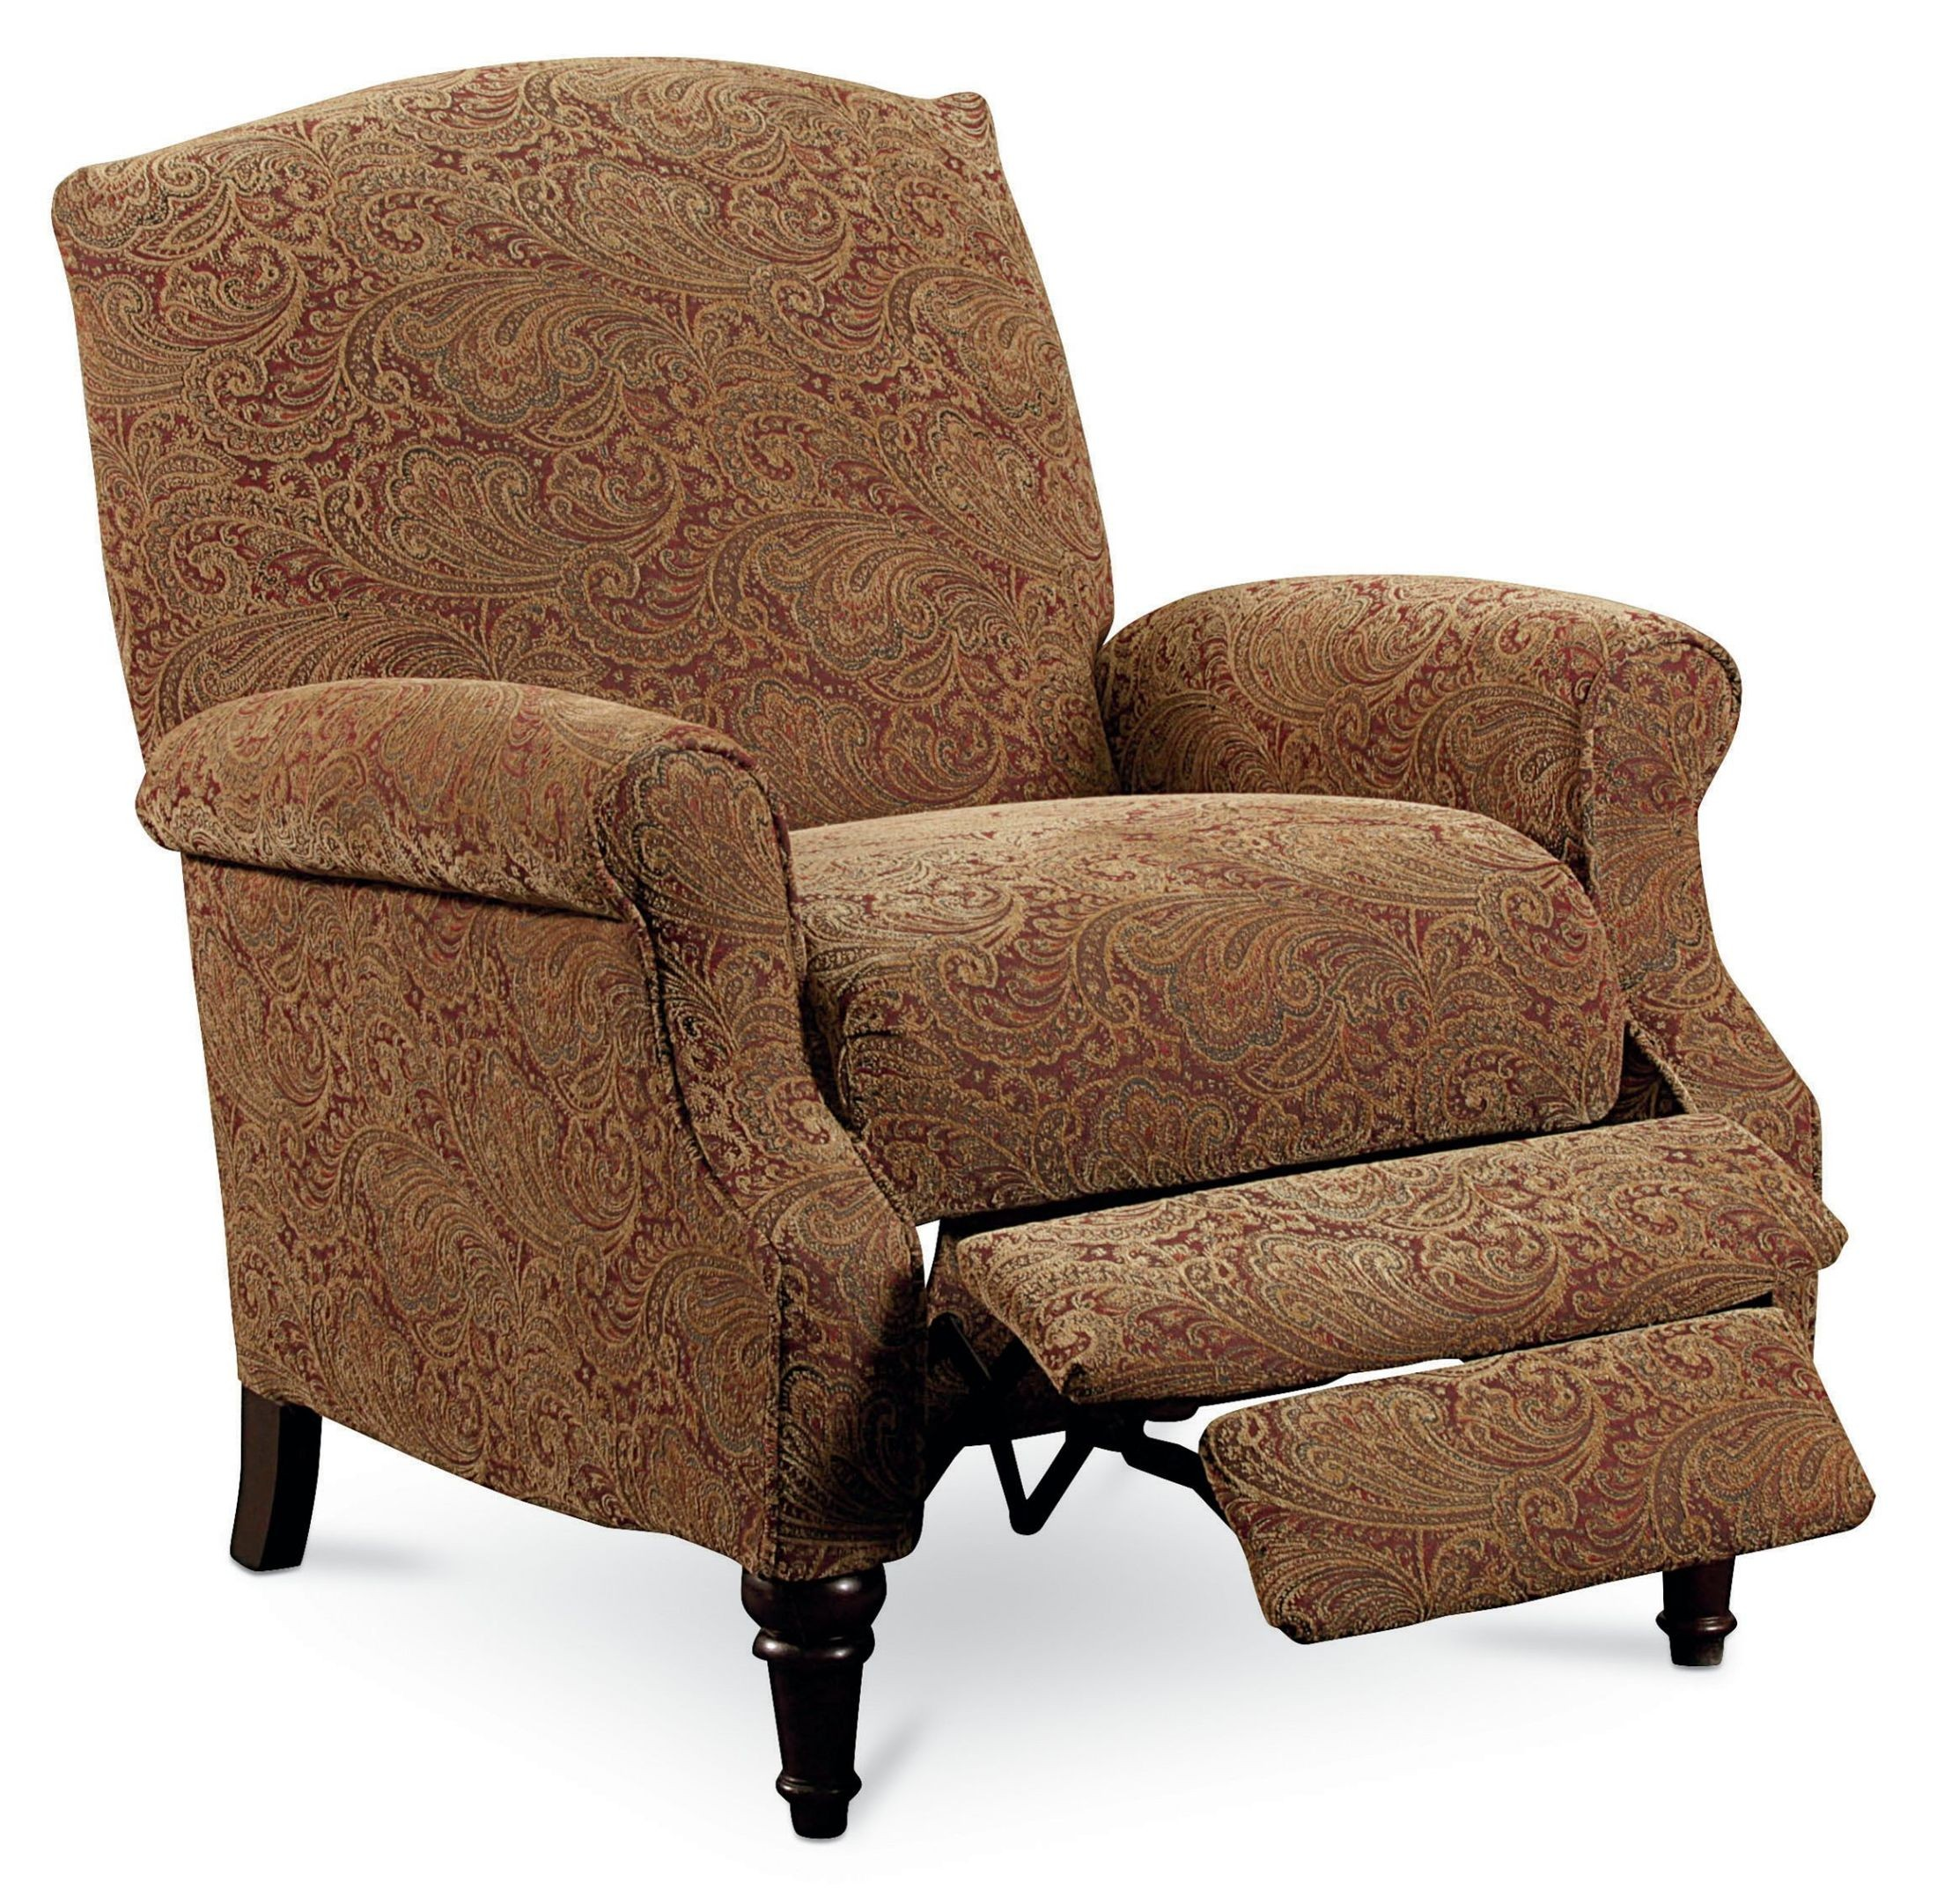 Chloe waters tobacco recliner from lane 2511 1614 21 for Lane furniture